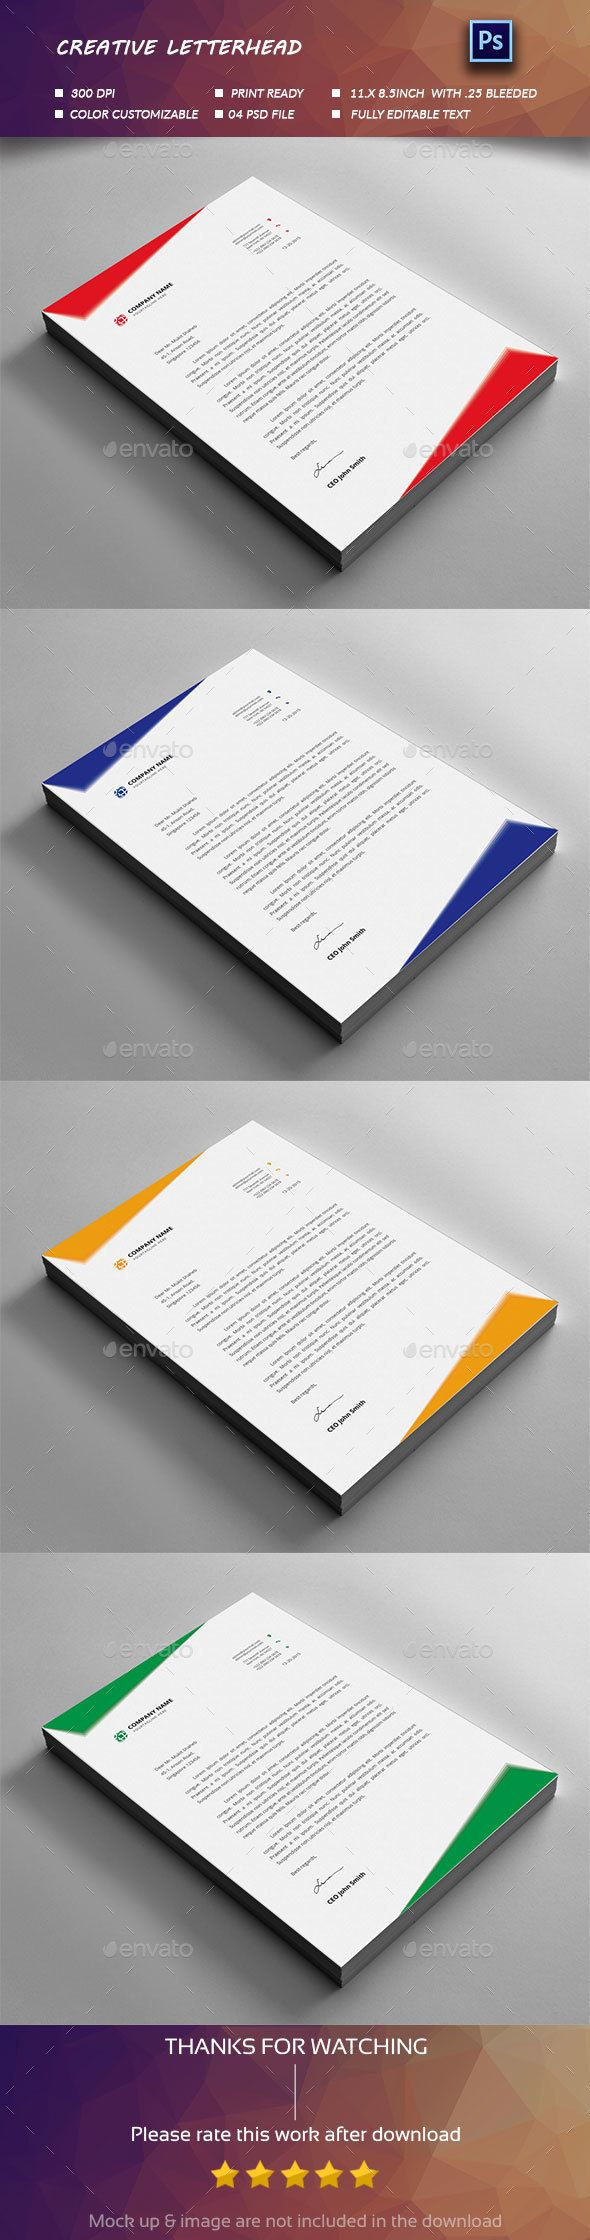 Letterhead Design Stationery Print Templates Download